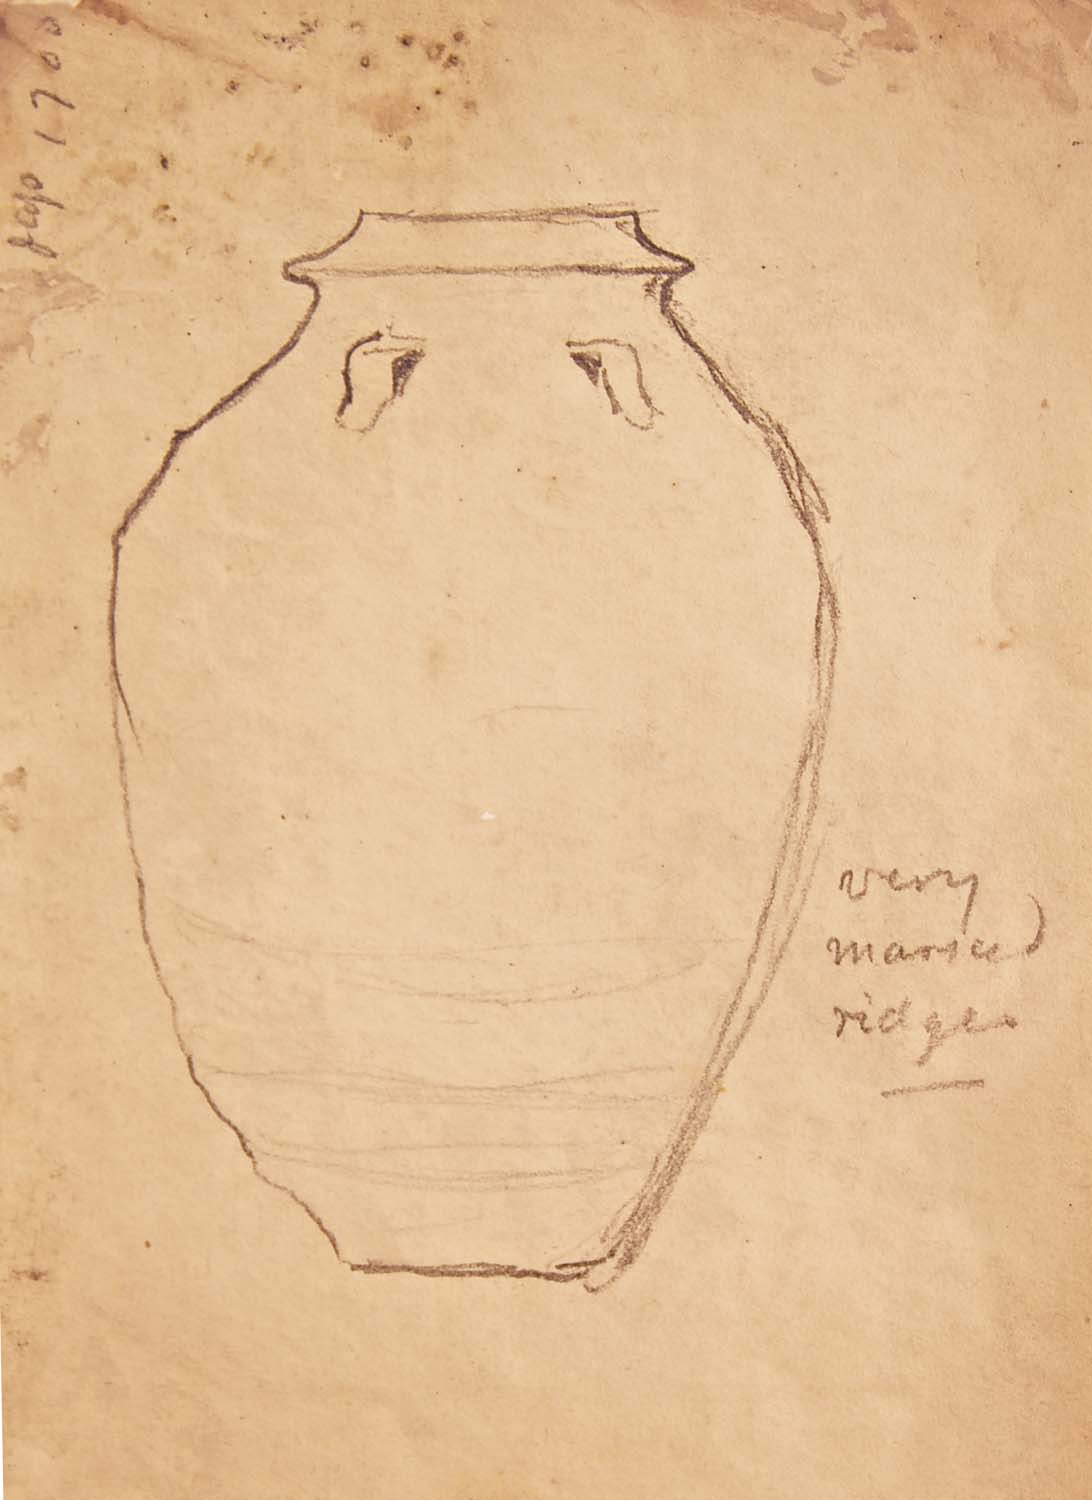 Edo Jar Sketch While at Metropolitan Art Msuem 1920sweb.jpg